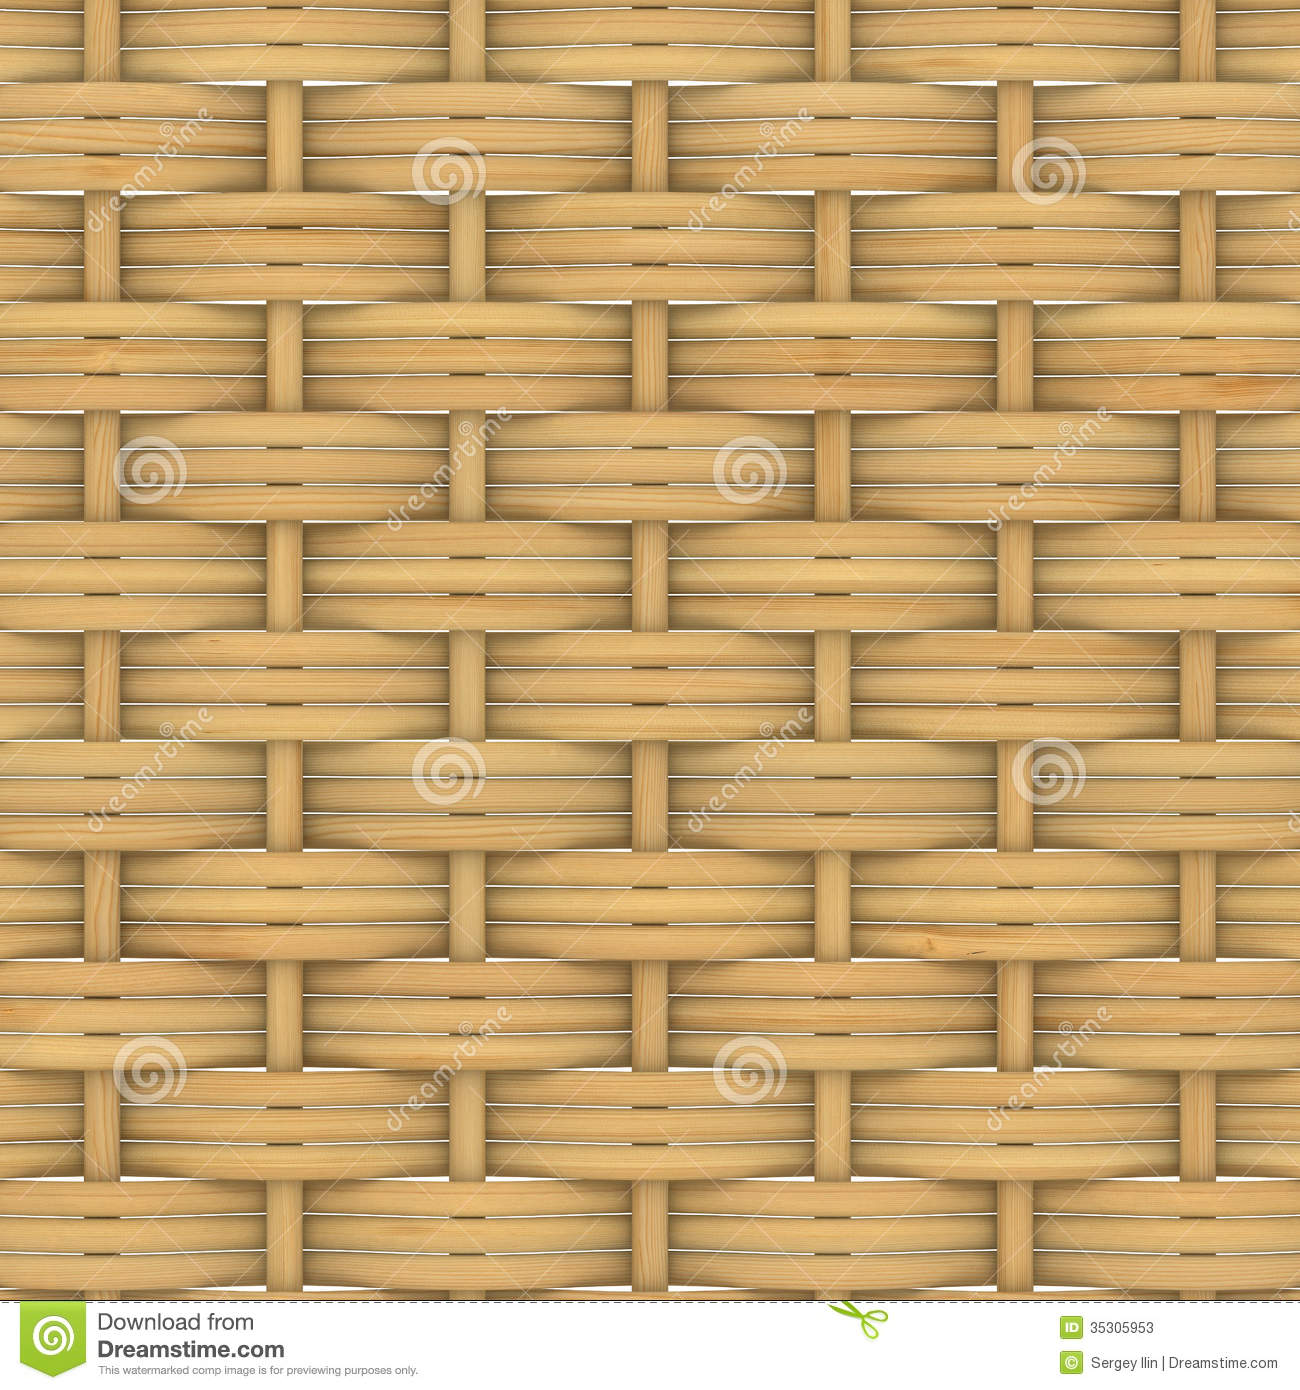 How To Weave A String Basket : Abstract decorative wooden textured basket weaving stock